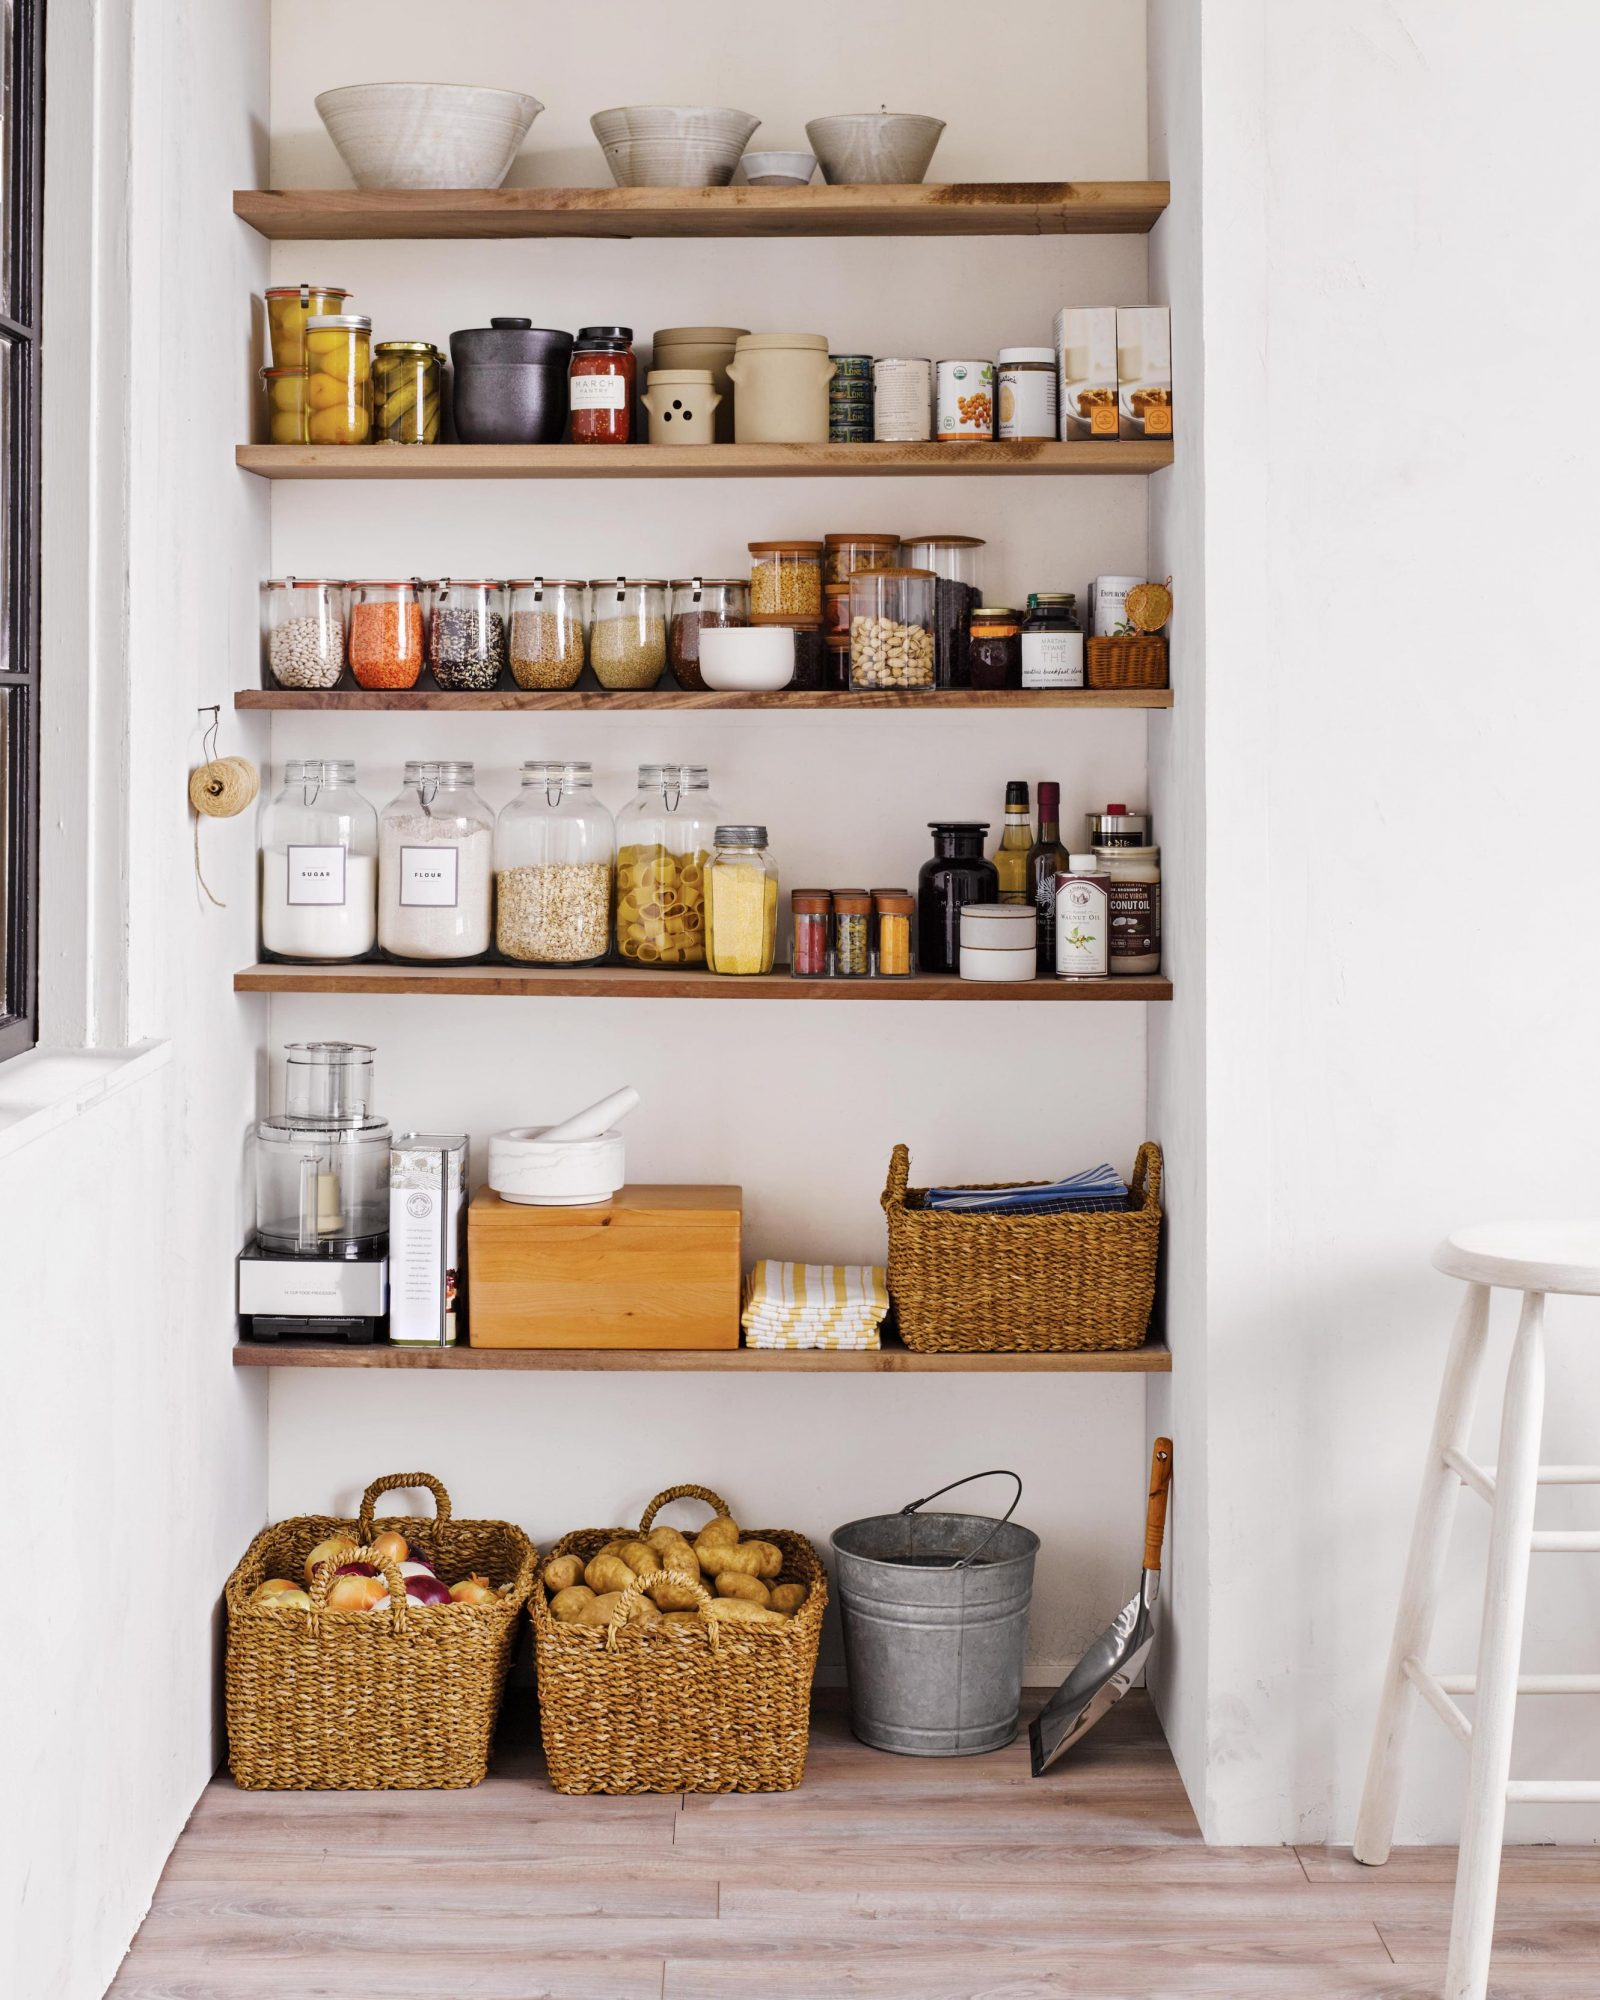 kitchen pantry with shelves stocked with jars of beans, lentils, grains, and flours